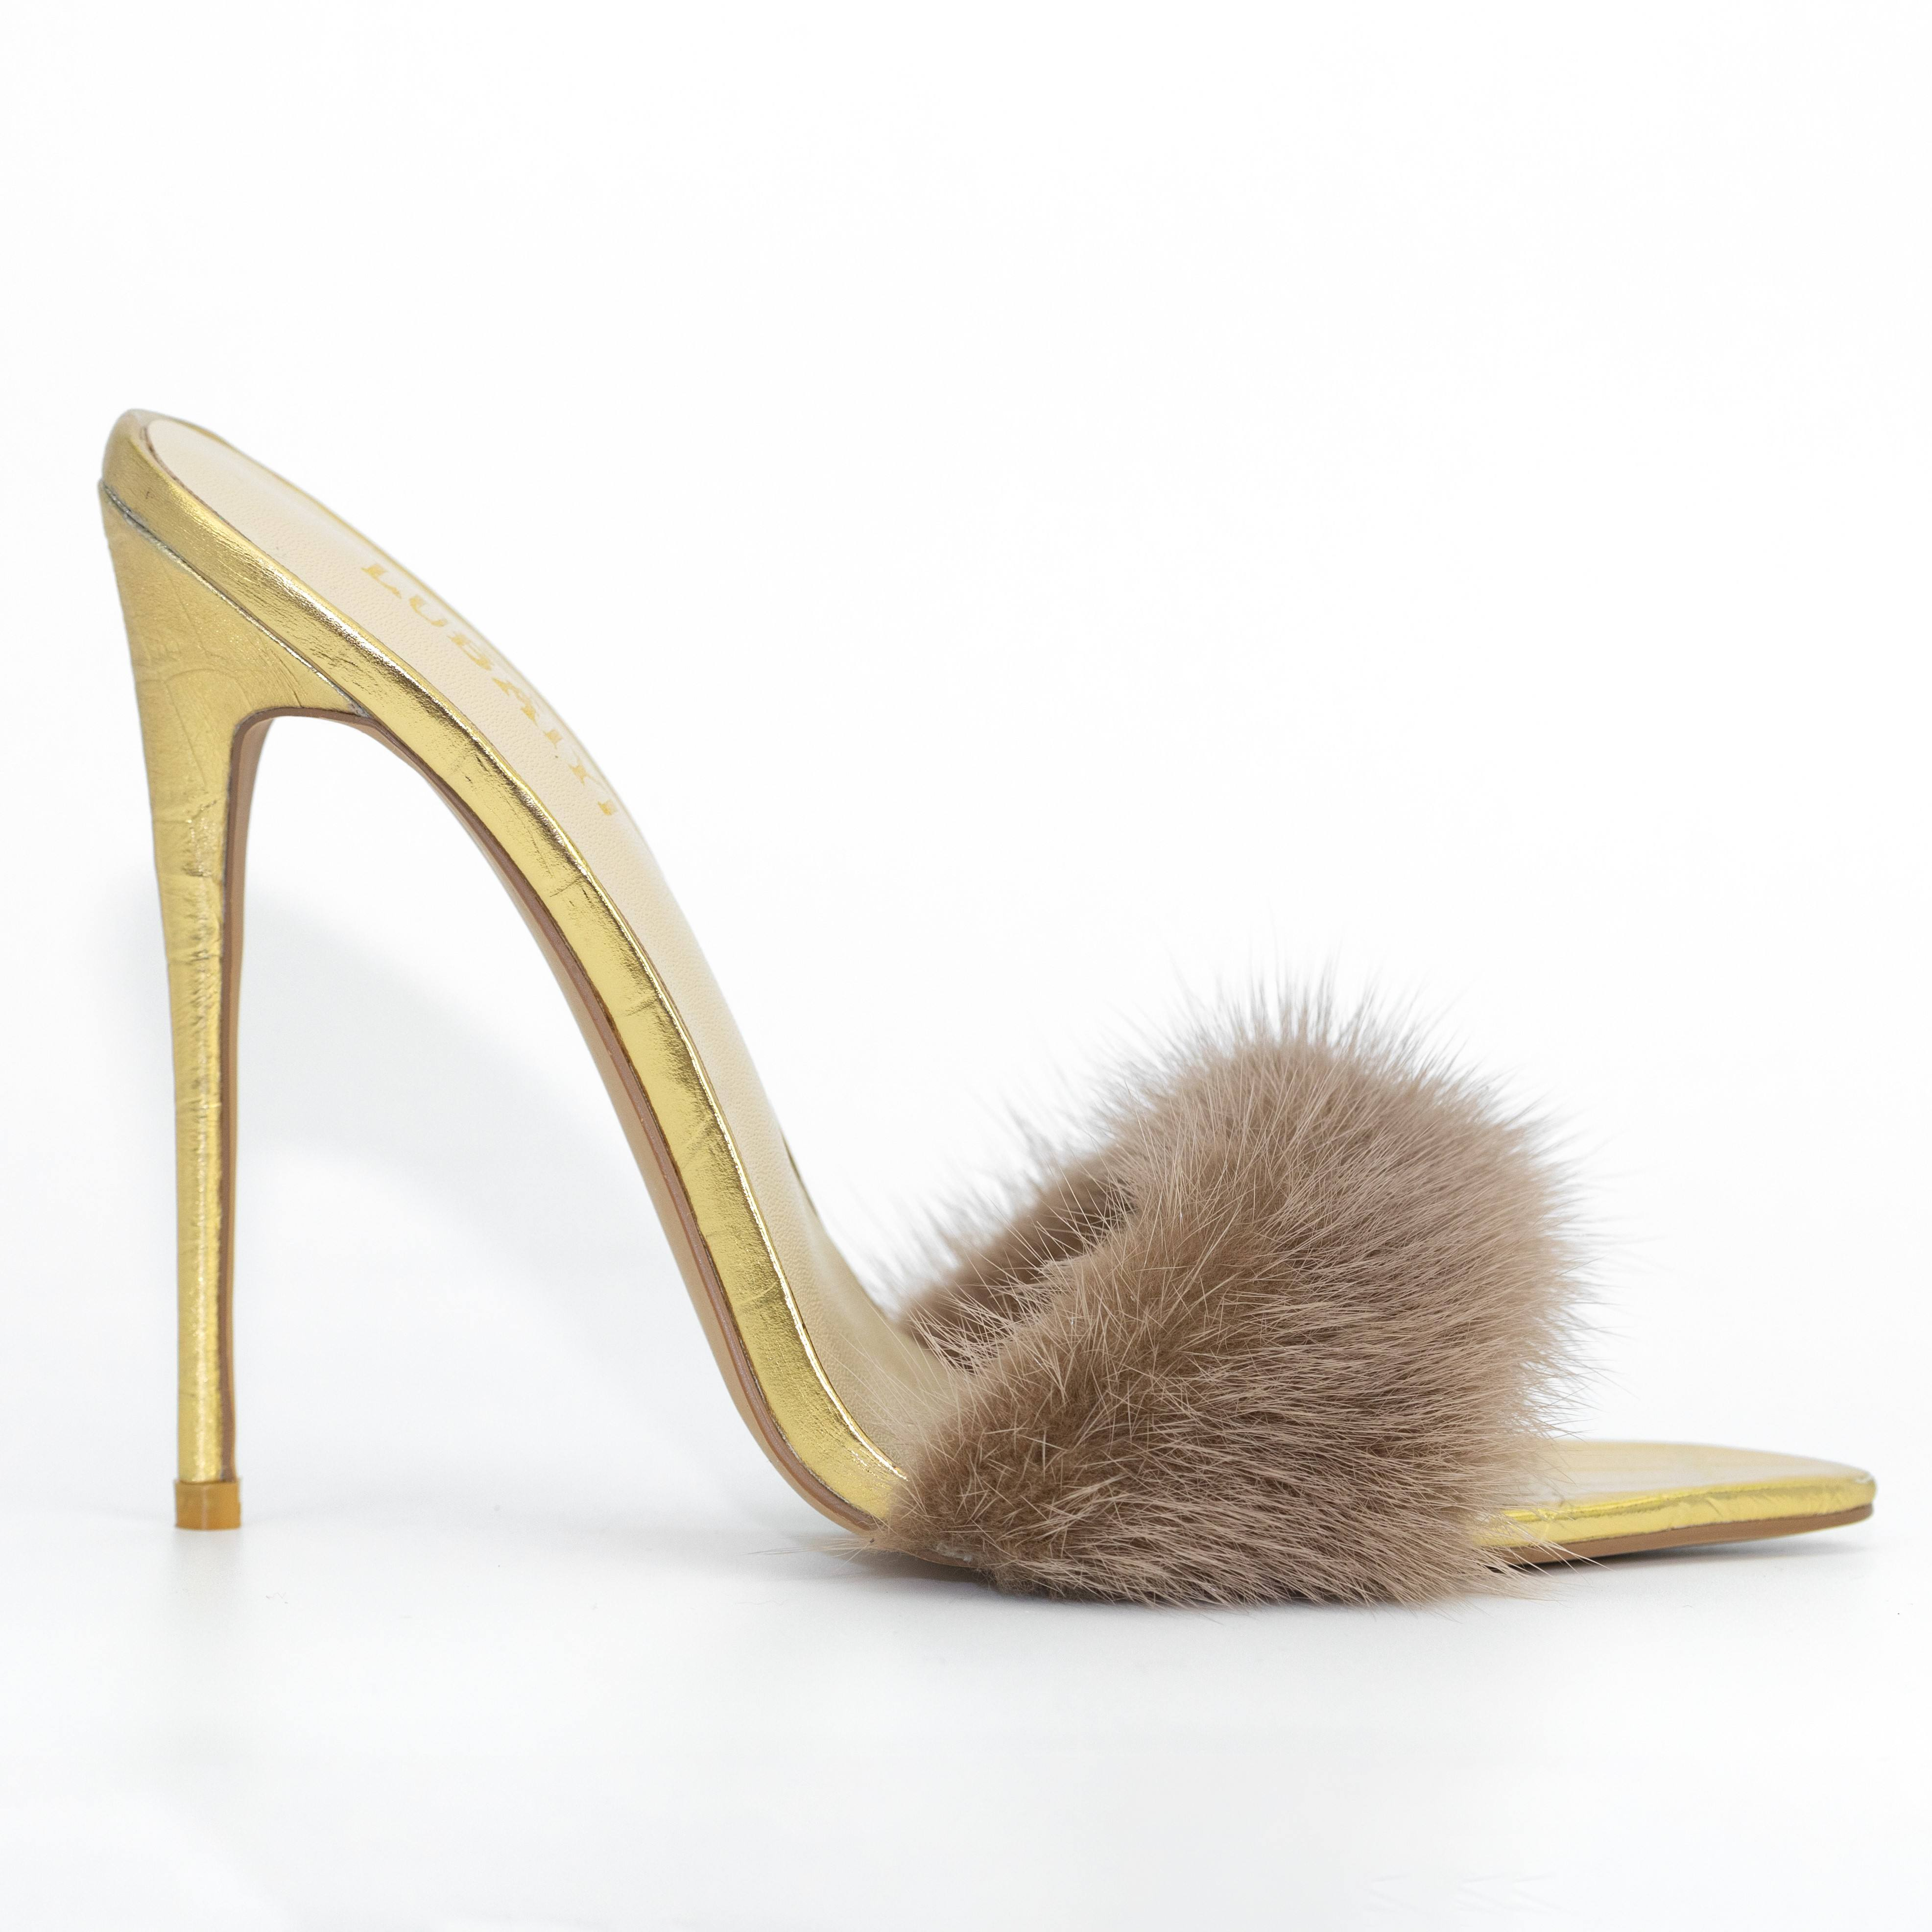 Real fur 12cm high quality croco leather high quality sexy high heel slipper for party showcase Elegant golden fashion slipper